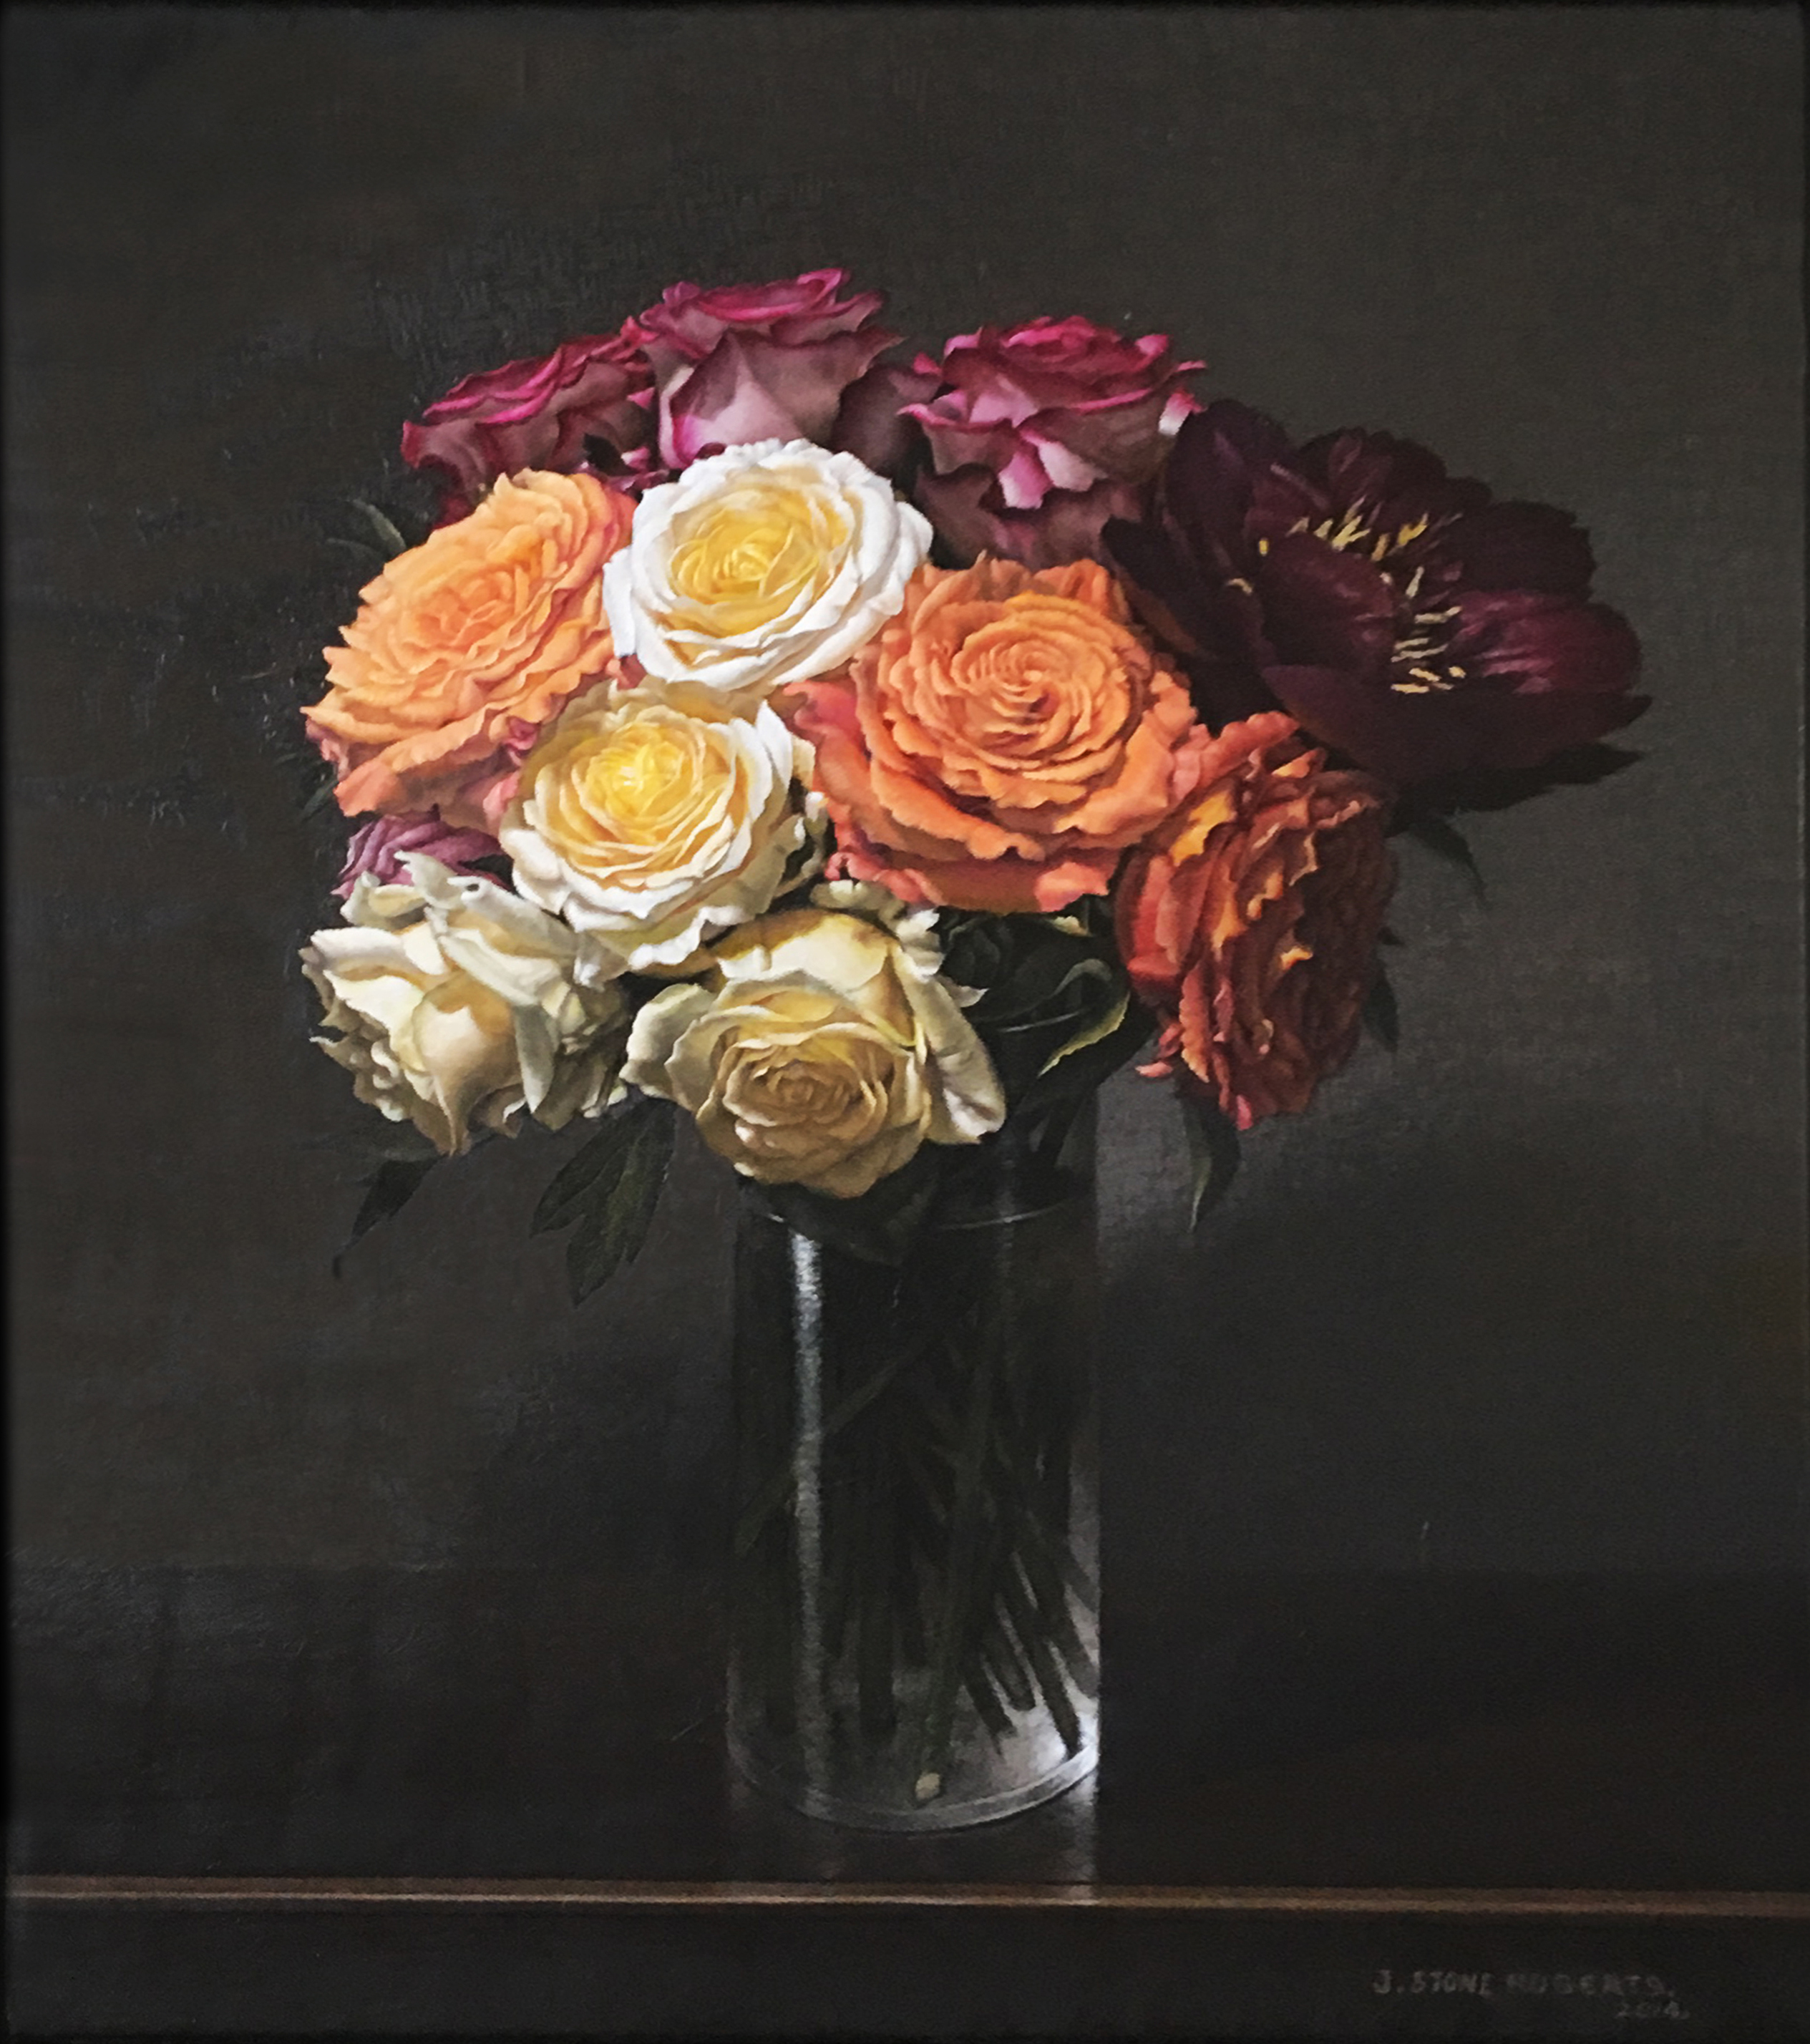 A VASE OF FLOWERS (2014)